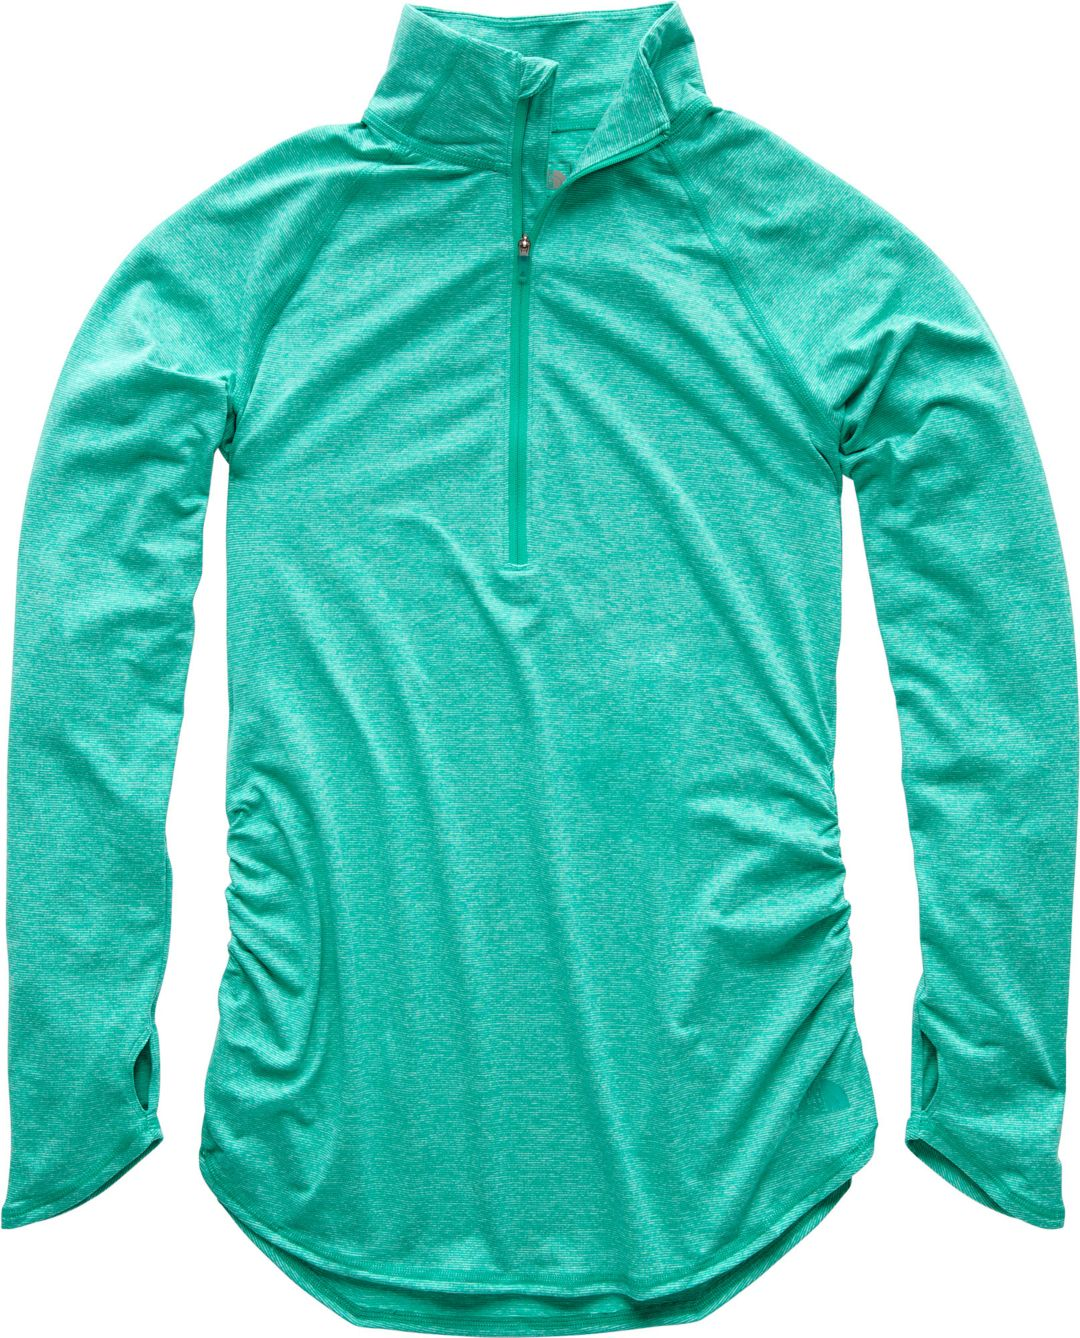 60505b399 The North Face Women's Motivation Stripe Half Zip Pullover